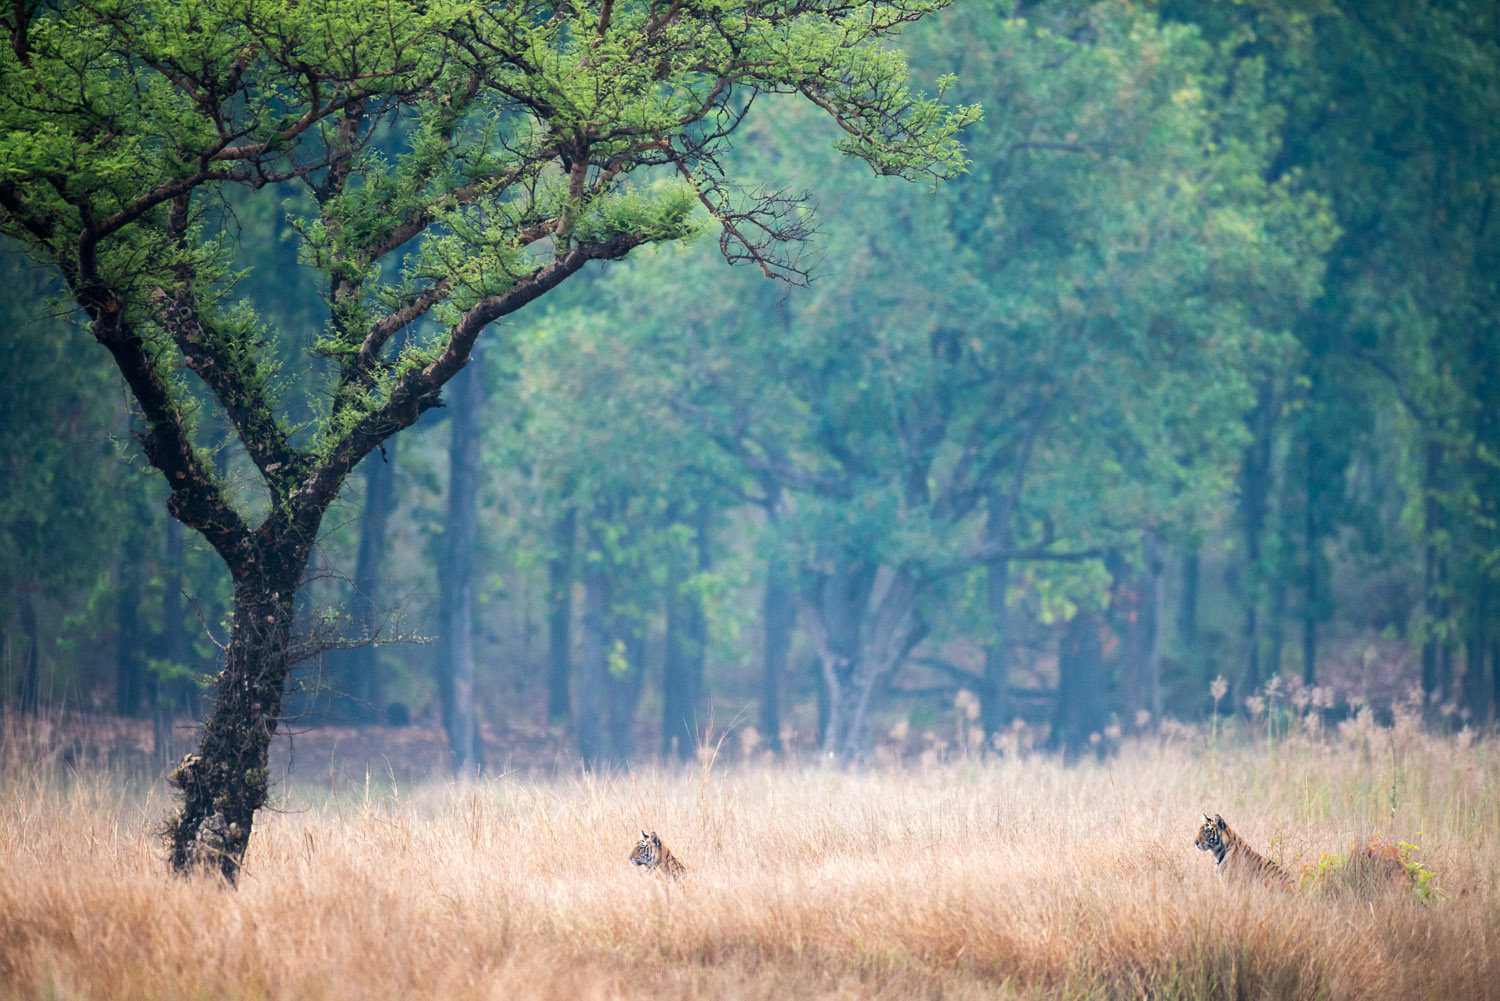 Bengal tiger cubs in meadow by 'khair' tree, Bandhavgarh National Park, Madhya Pradesh, India